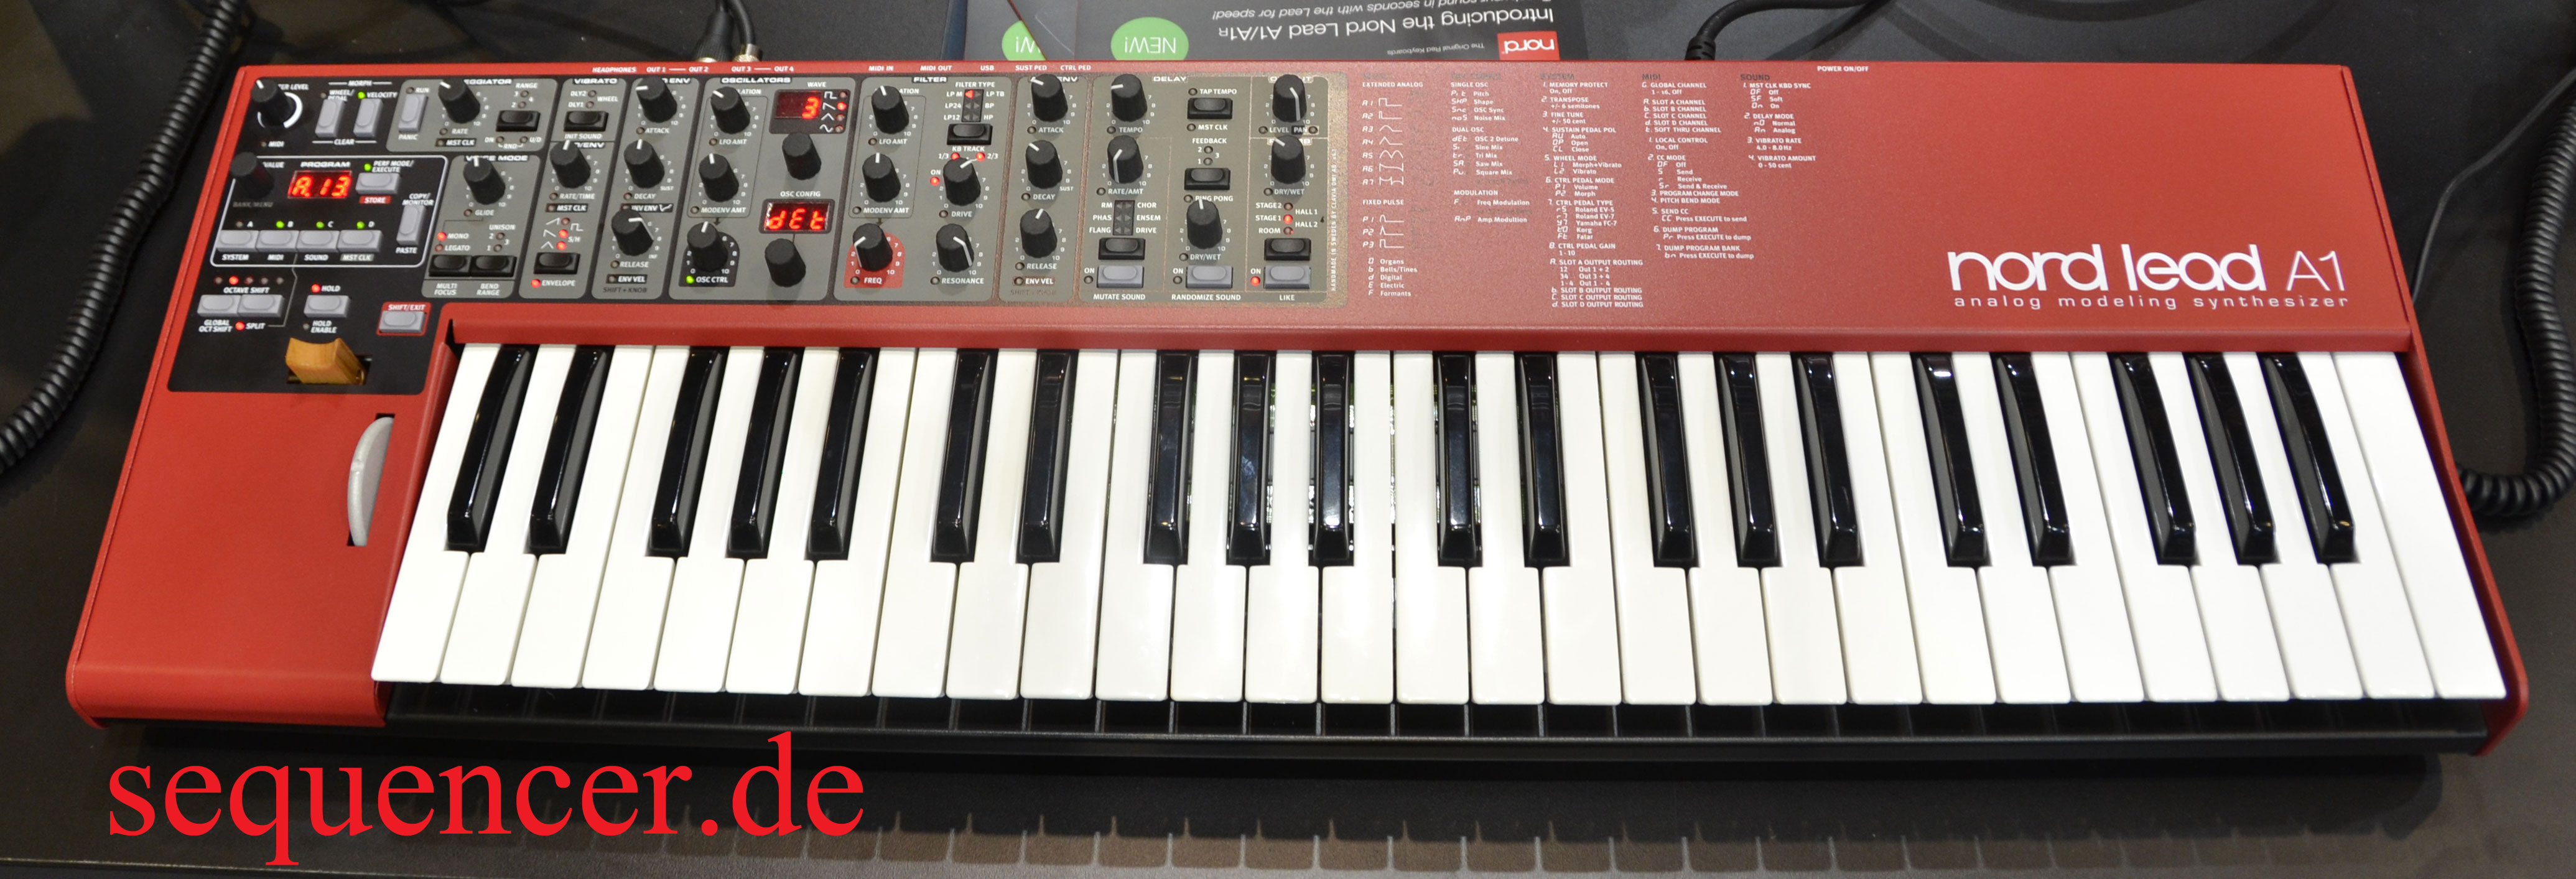 Clavia Nord Lead A1, A1R synthesizer